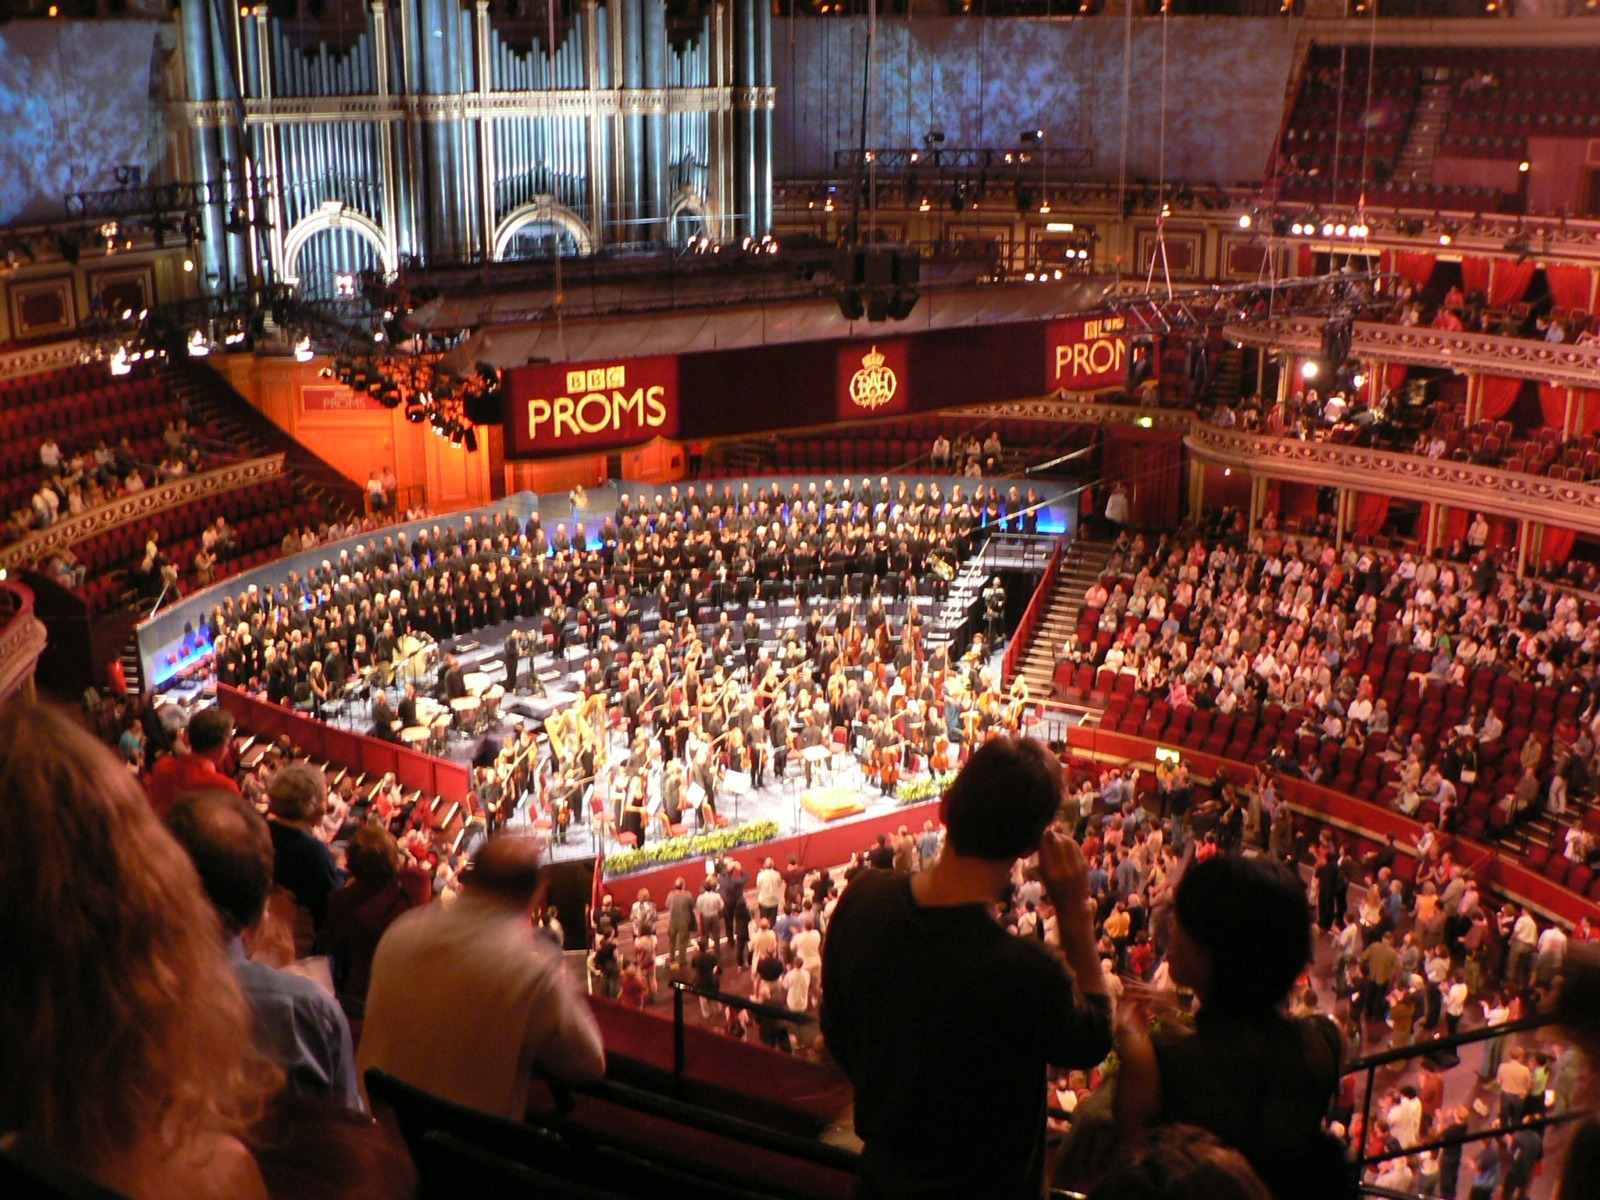 Of Proms and Promming